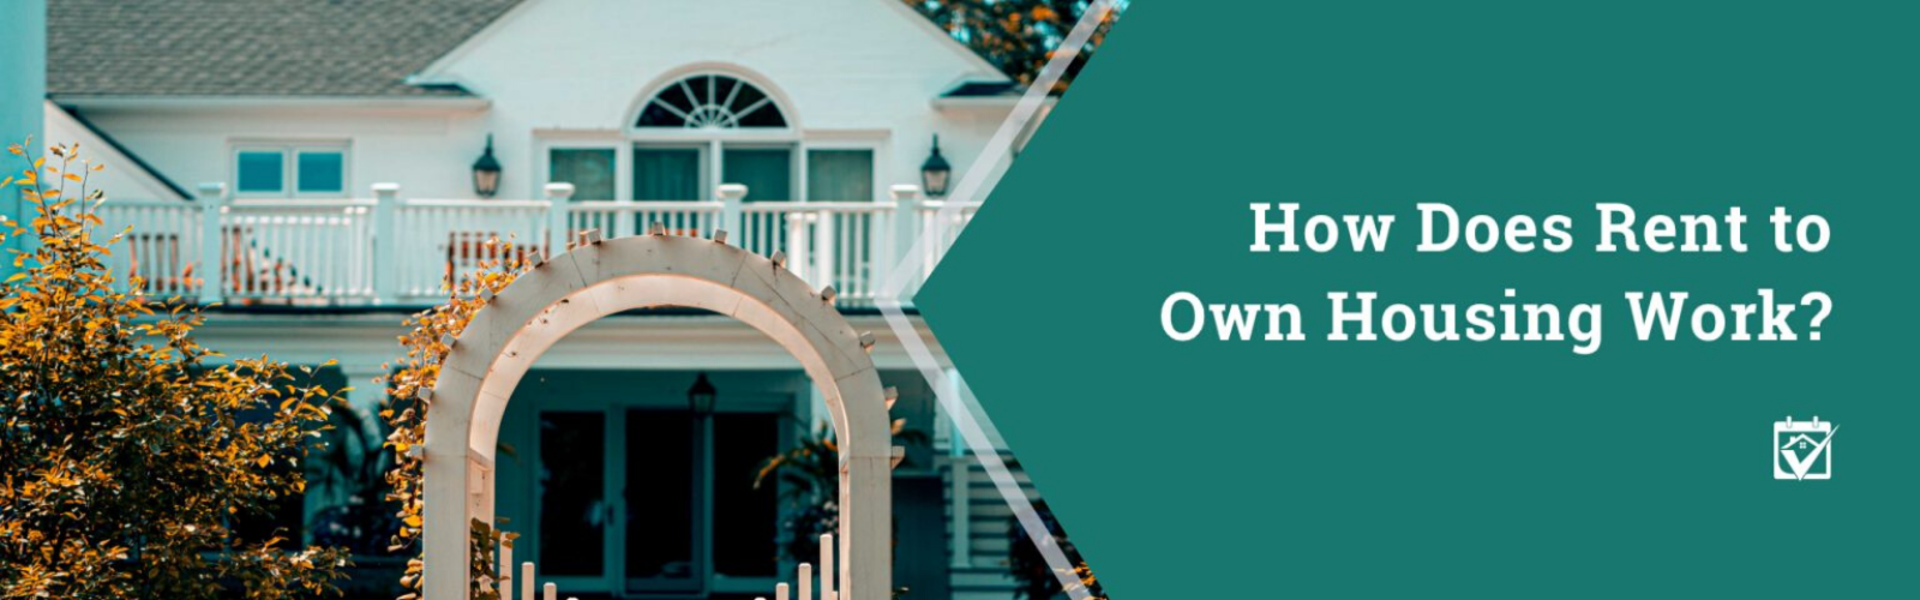 How Does Rent to Own Housing Work?